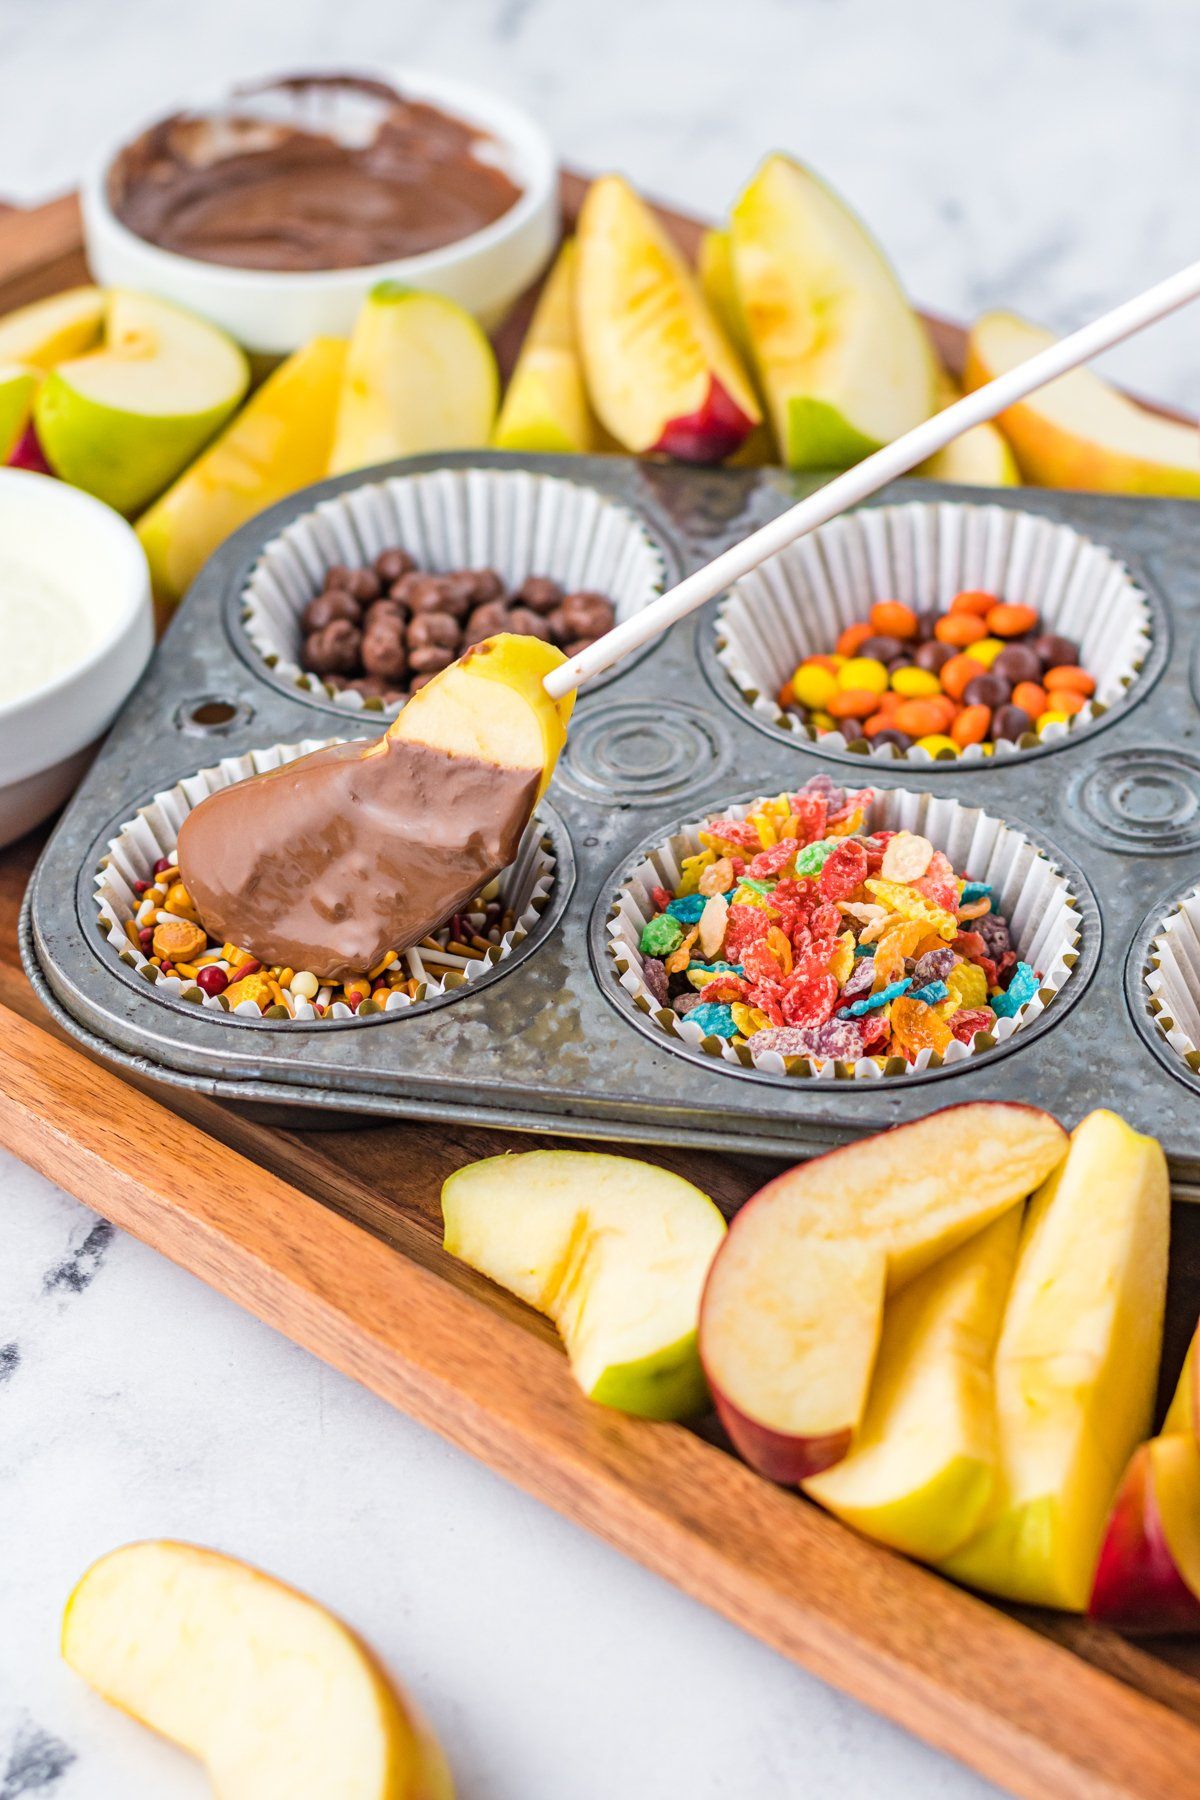 apple covered in chocolate being dipped in toppings